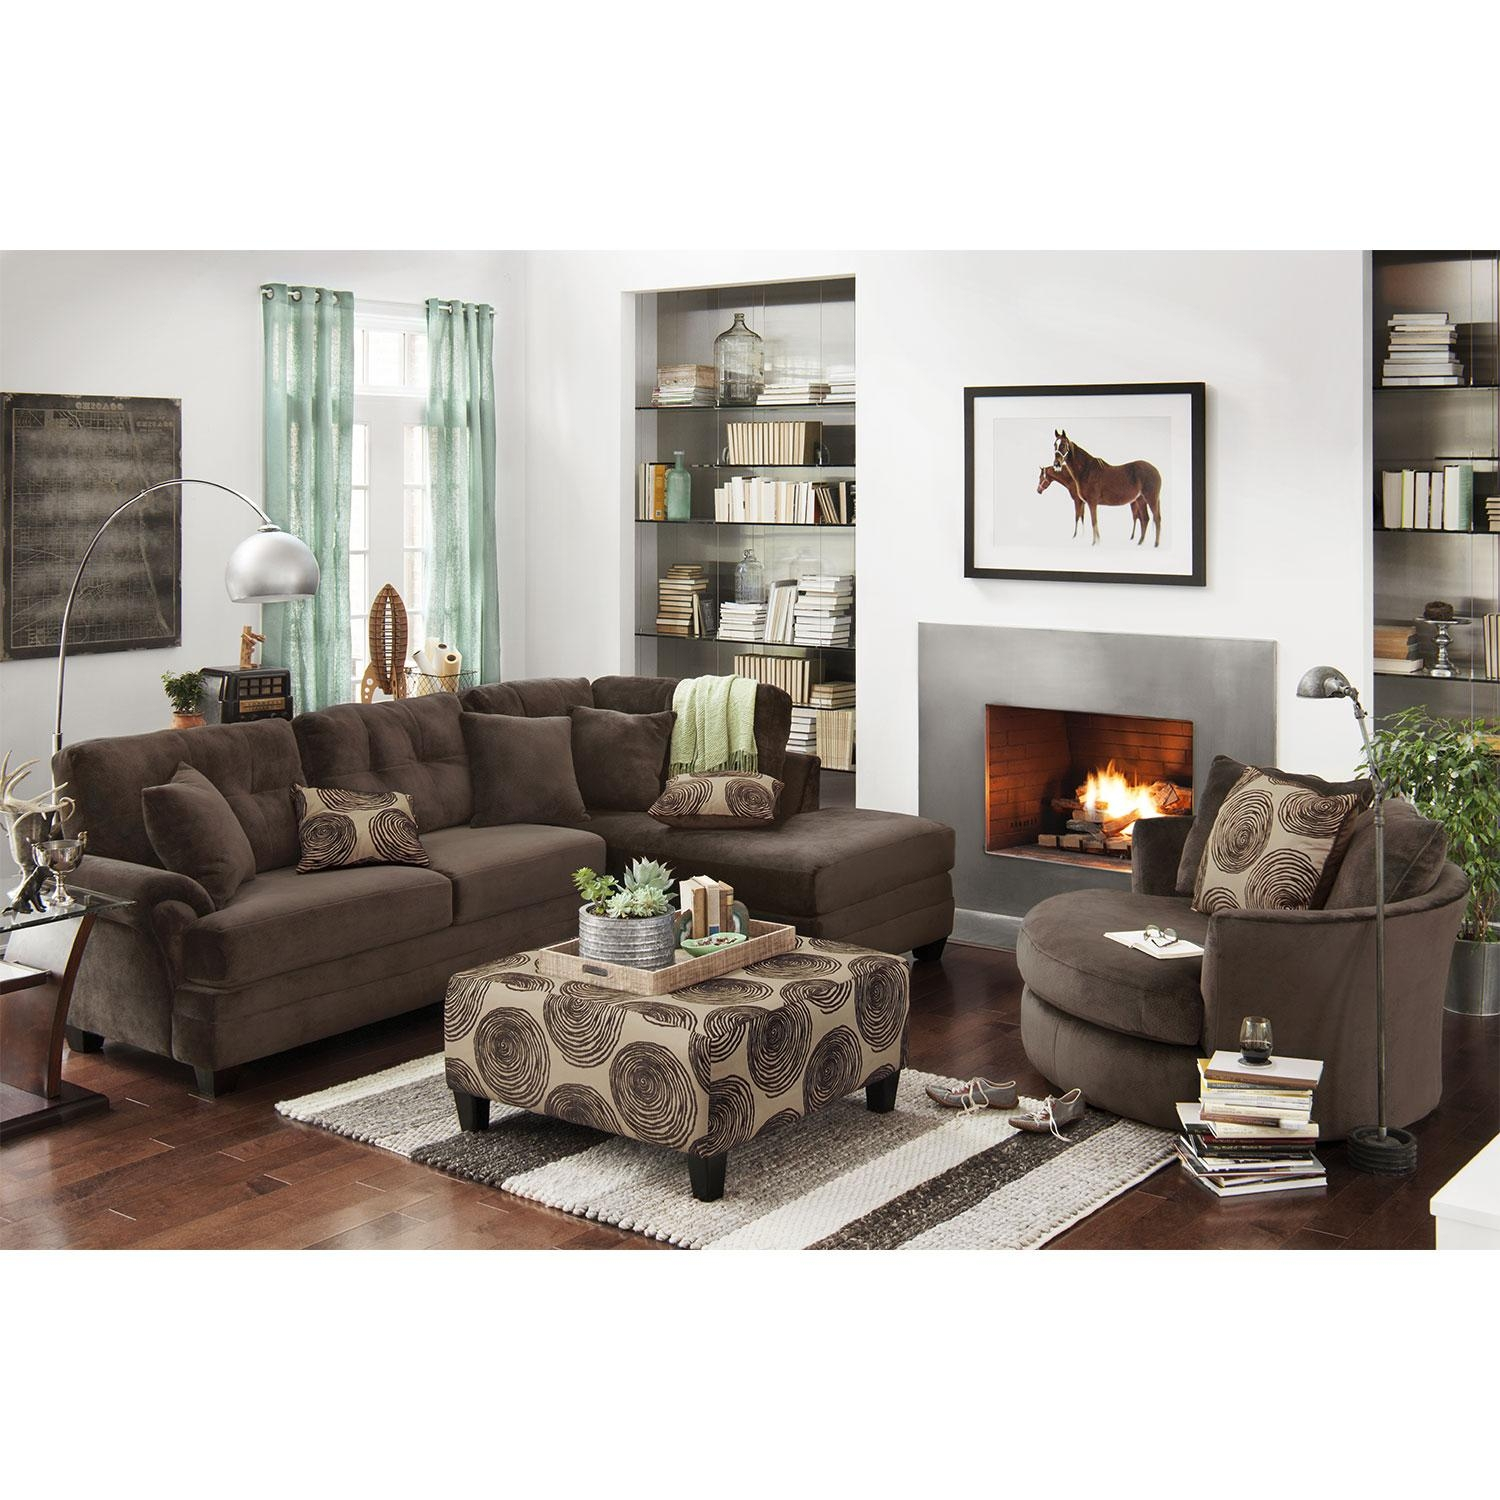 Cordelle 2 Piece Right Facing Chaise Sectional – Chocolate Intended For Sectional With 2 Chaises (Image 2 of 20)